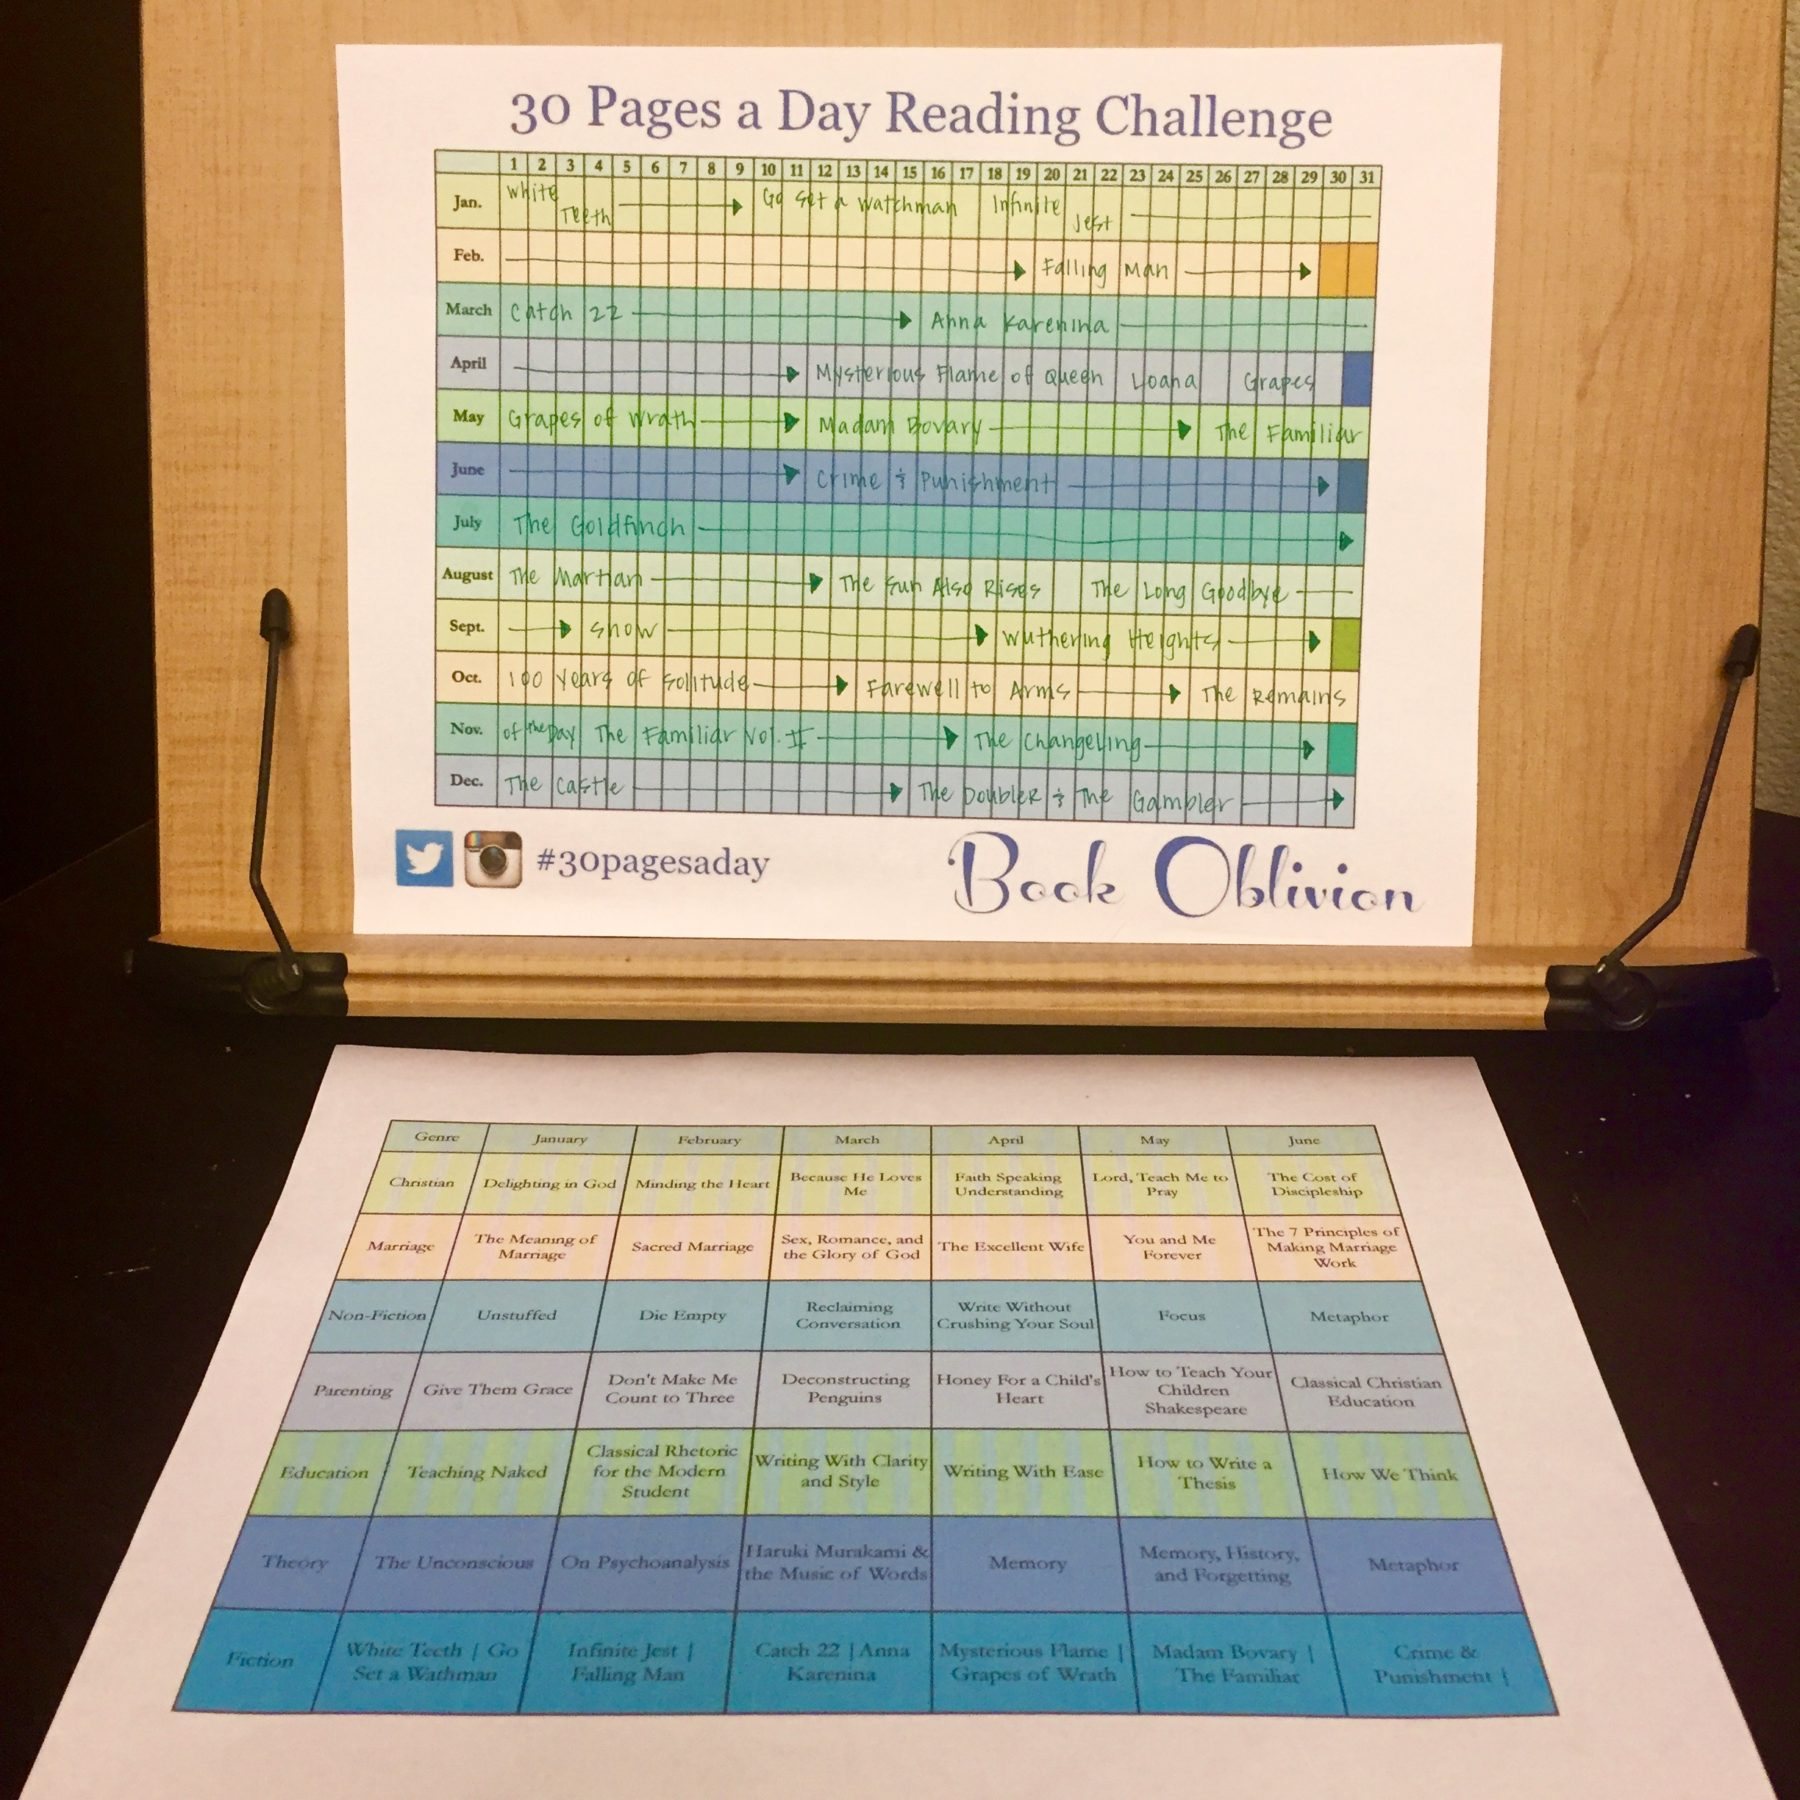 Super Nerdy Book Reading Schedule 30 Pages a Day